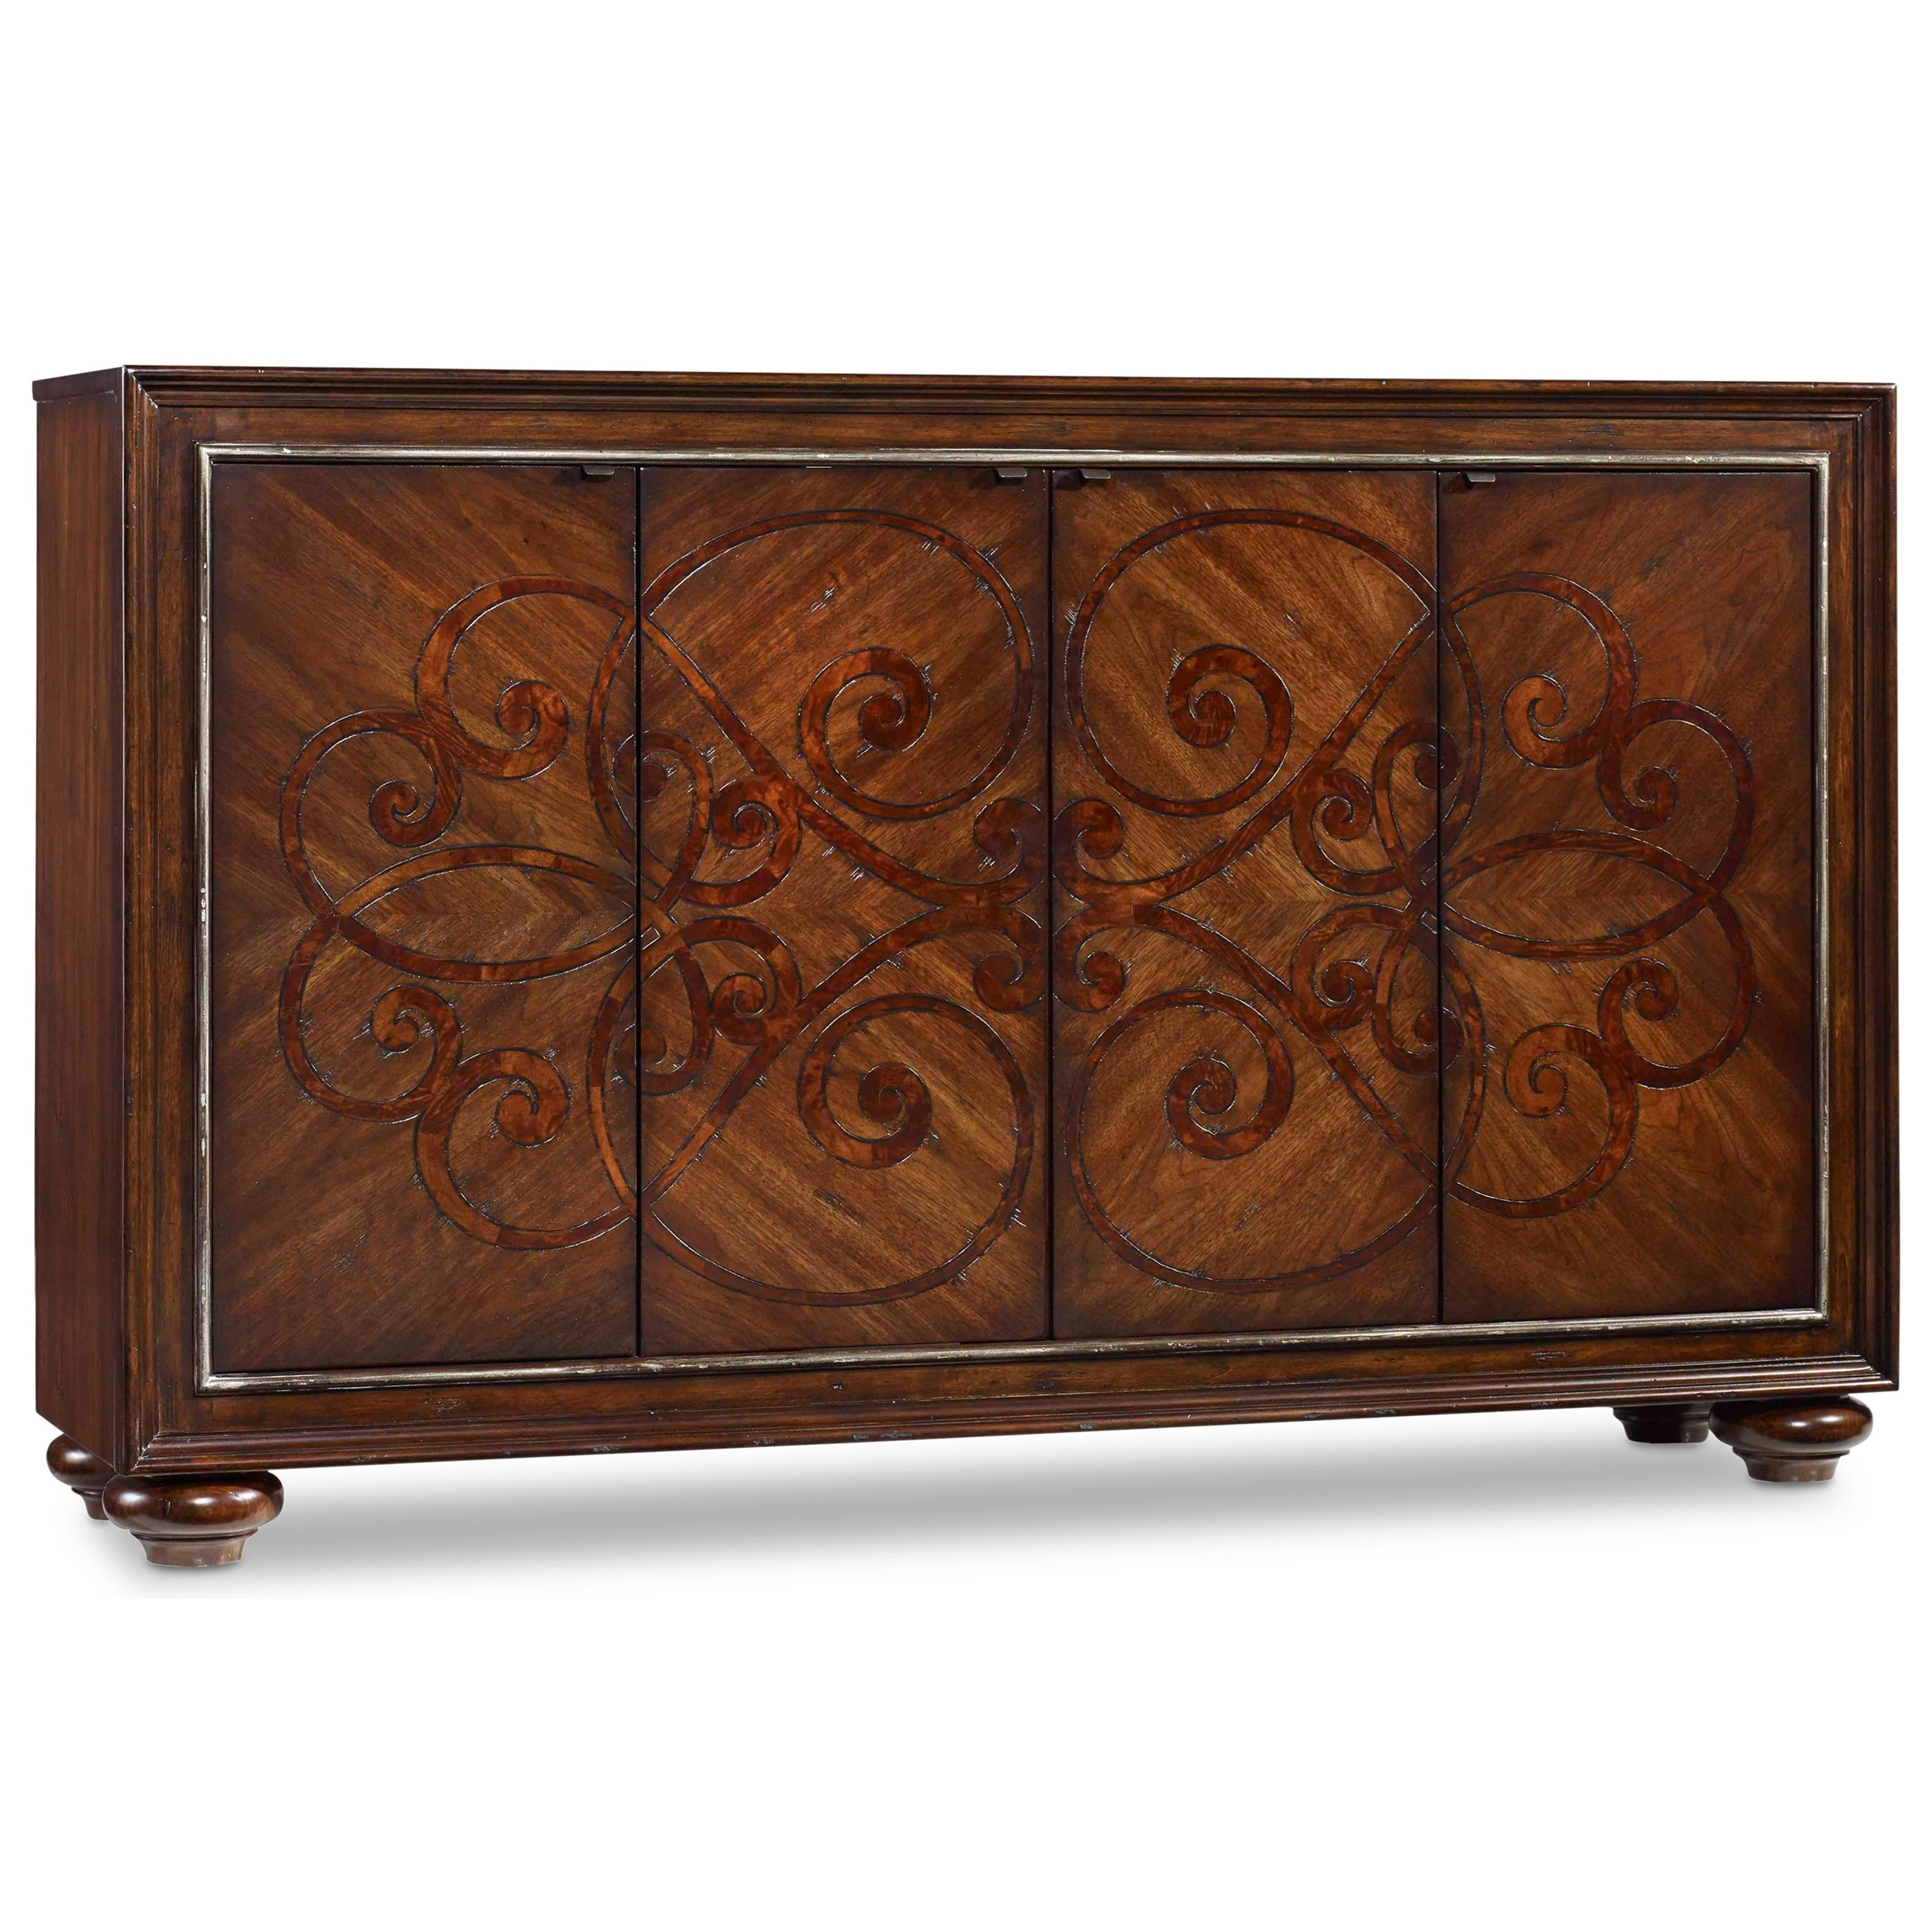 Hamilton Home Living Room Accents Accent Door Chest - Item Number: 5475-85001